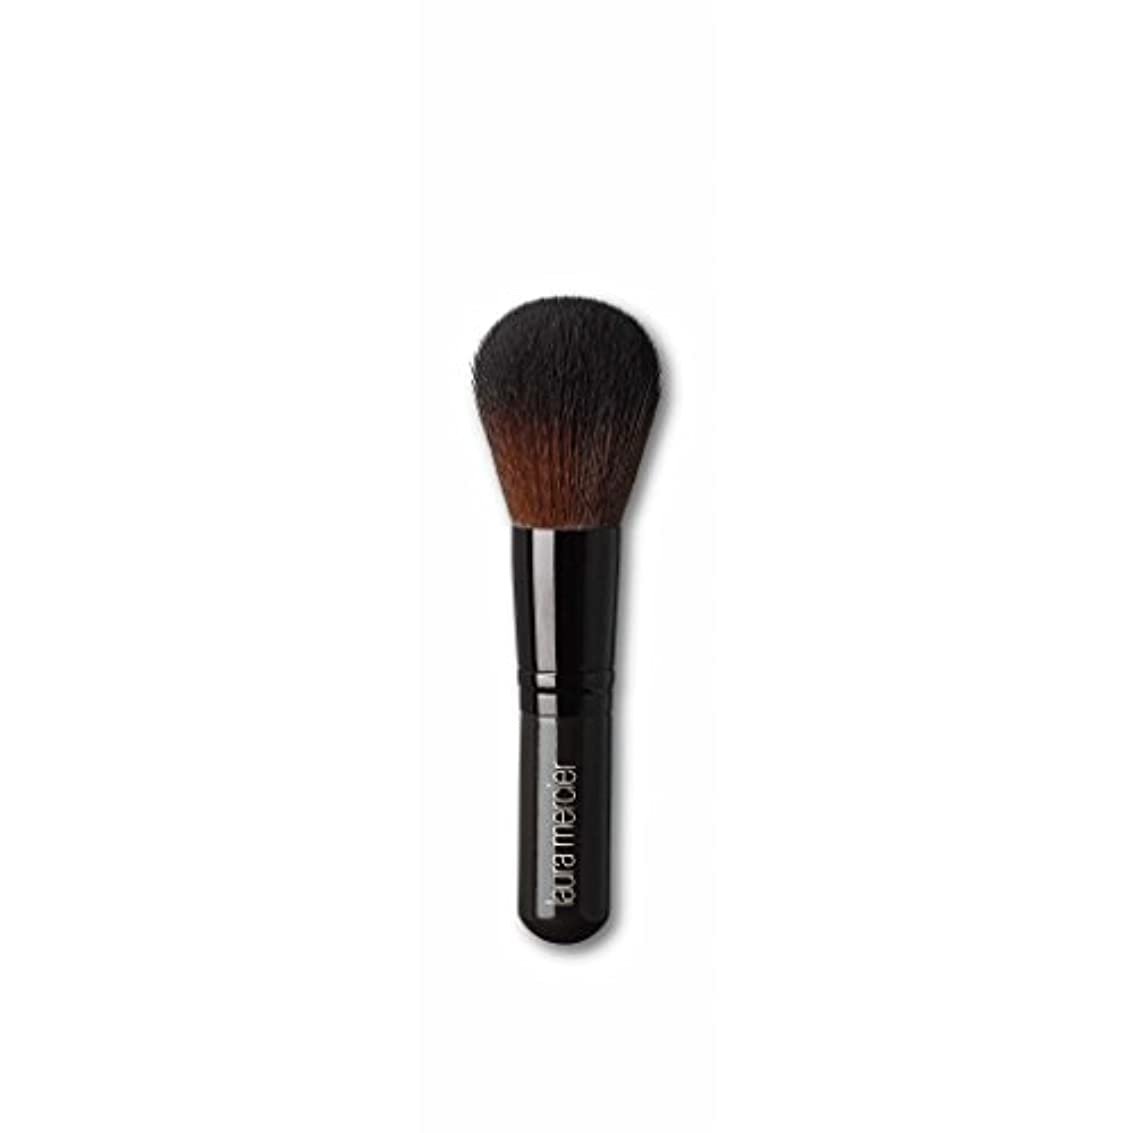 イデオロギーエレベータークラシカルLaura Mercier Severely Round Head Blending Synthetic Powder Brush